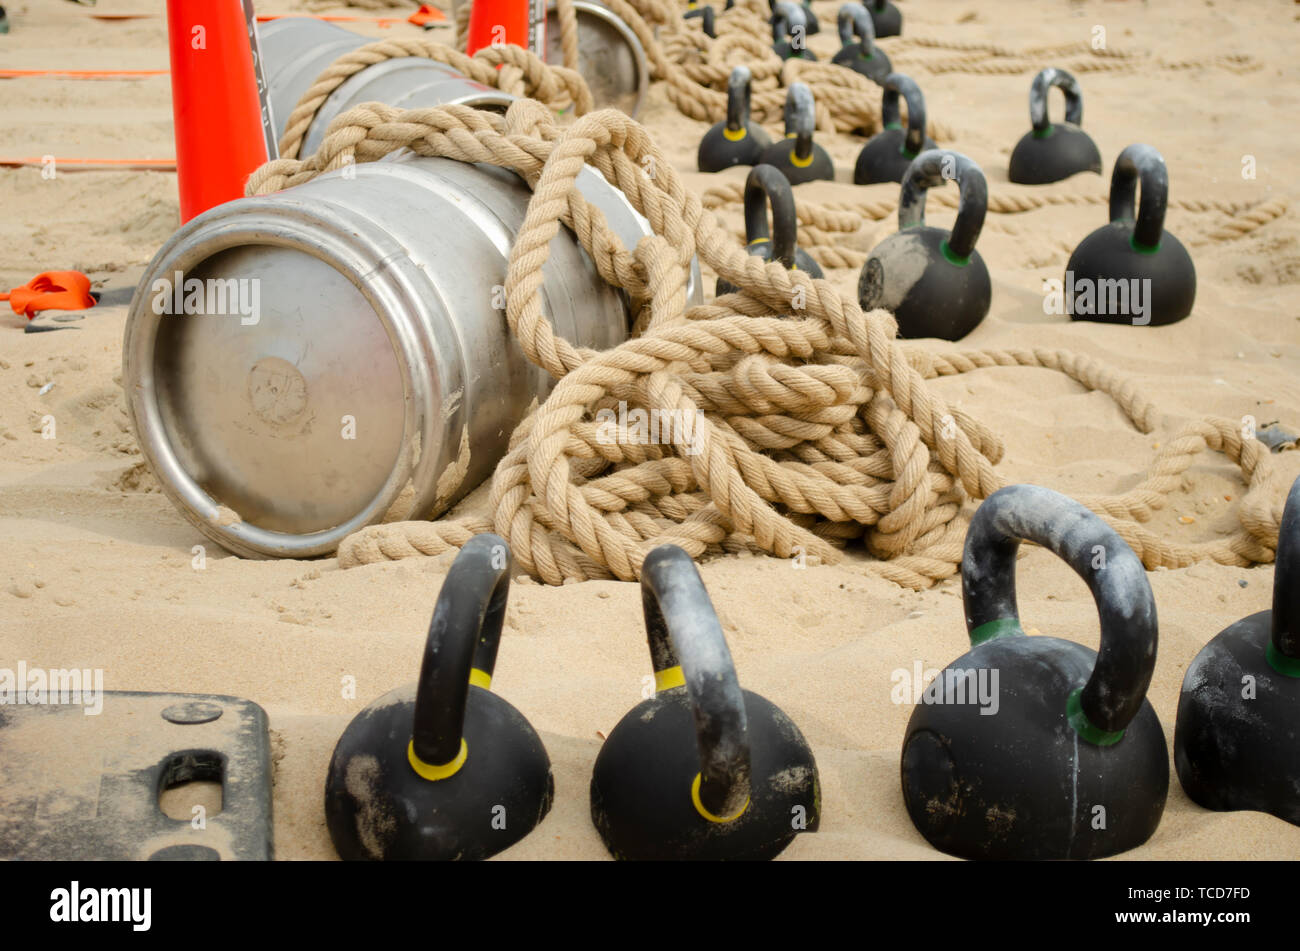 Barrel, tied with a rope and weights on the beach before a sporting event. - Stock Image